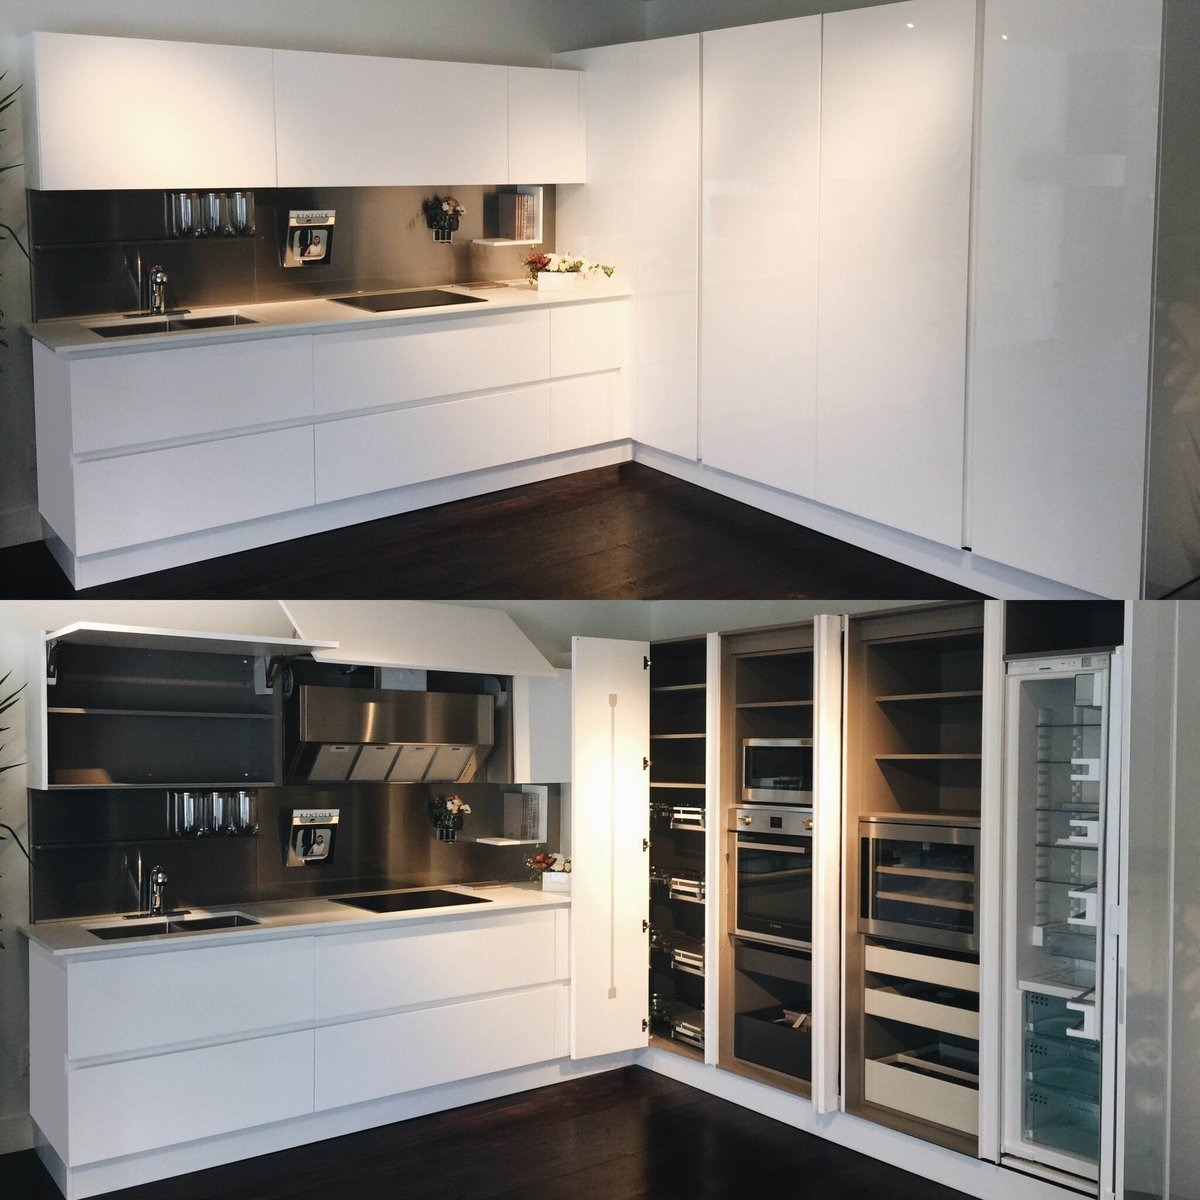 Come See Our Beautiful Italian Cabinetry And Learn About Upcoming Projects.  #vancouver #Italian #kitchen #cabinetry #white #interiors #interiordesign  #style ...